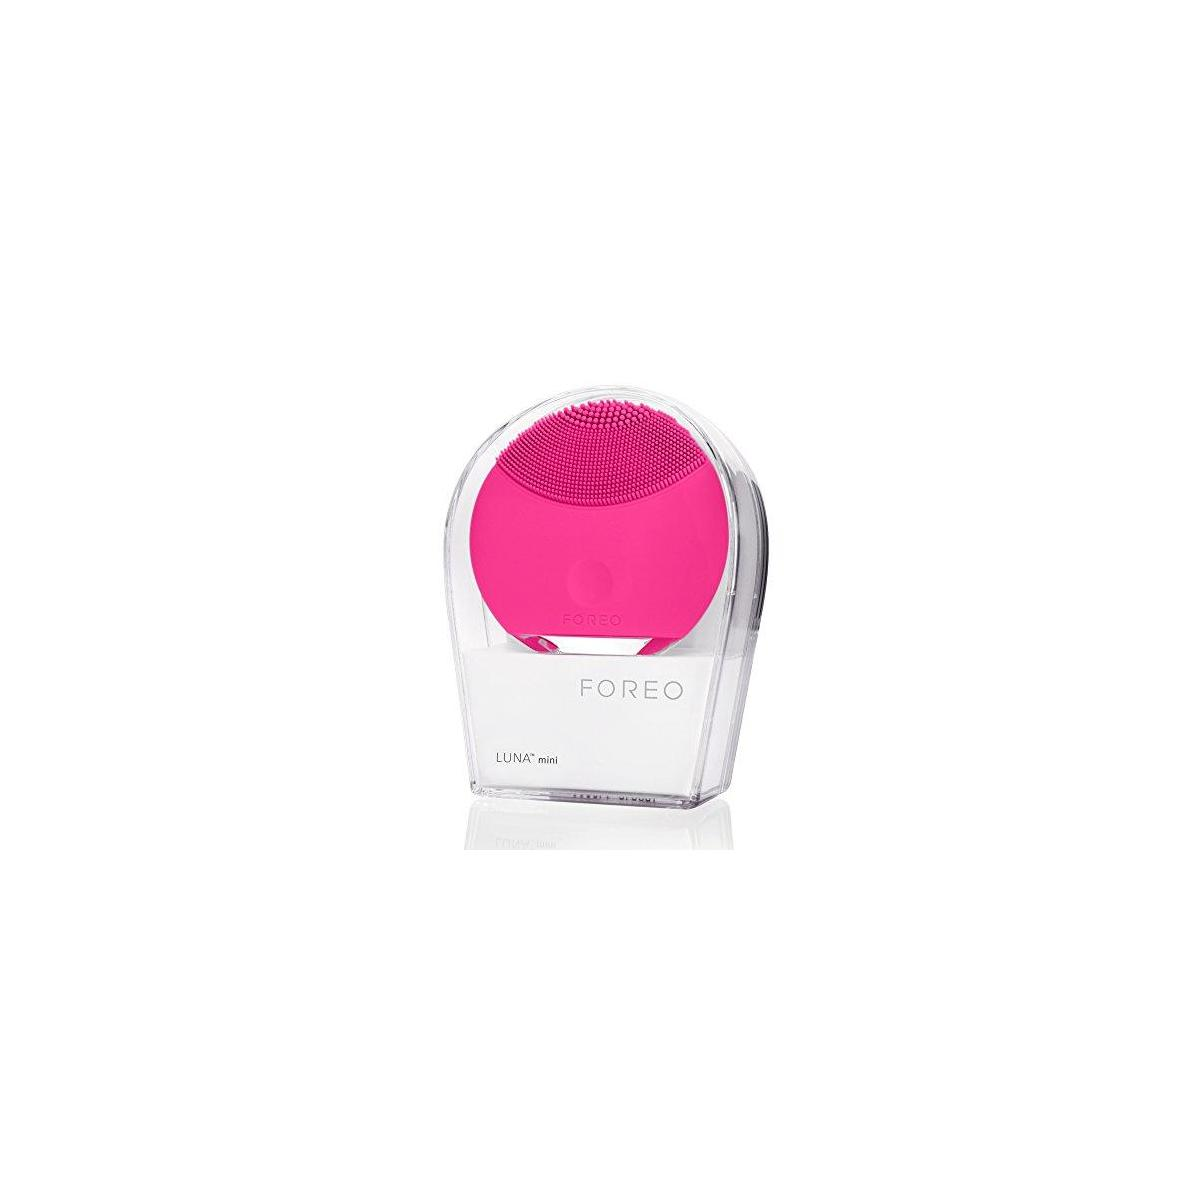 FOREO LUNA mini Silicone Face Brush with Facial Cleansing for All Skin Types (Magenta).